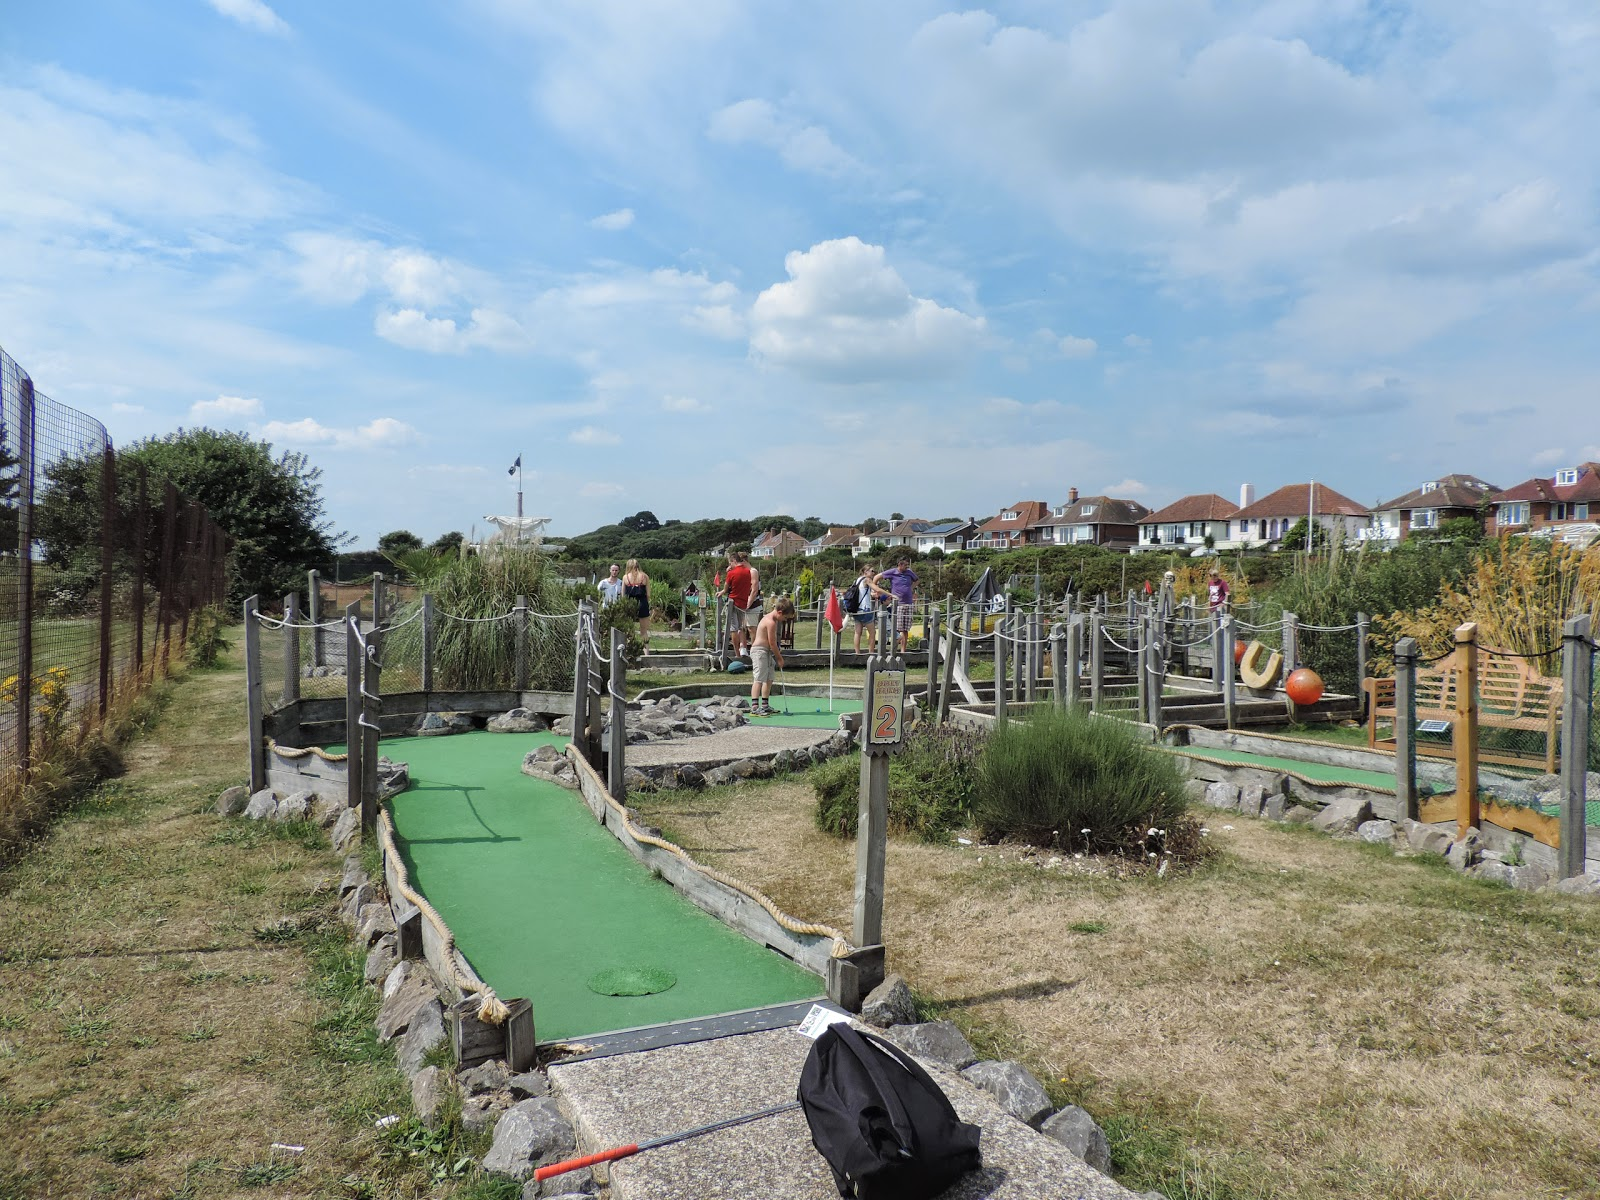 crazy mini golf course stokes bay seafront